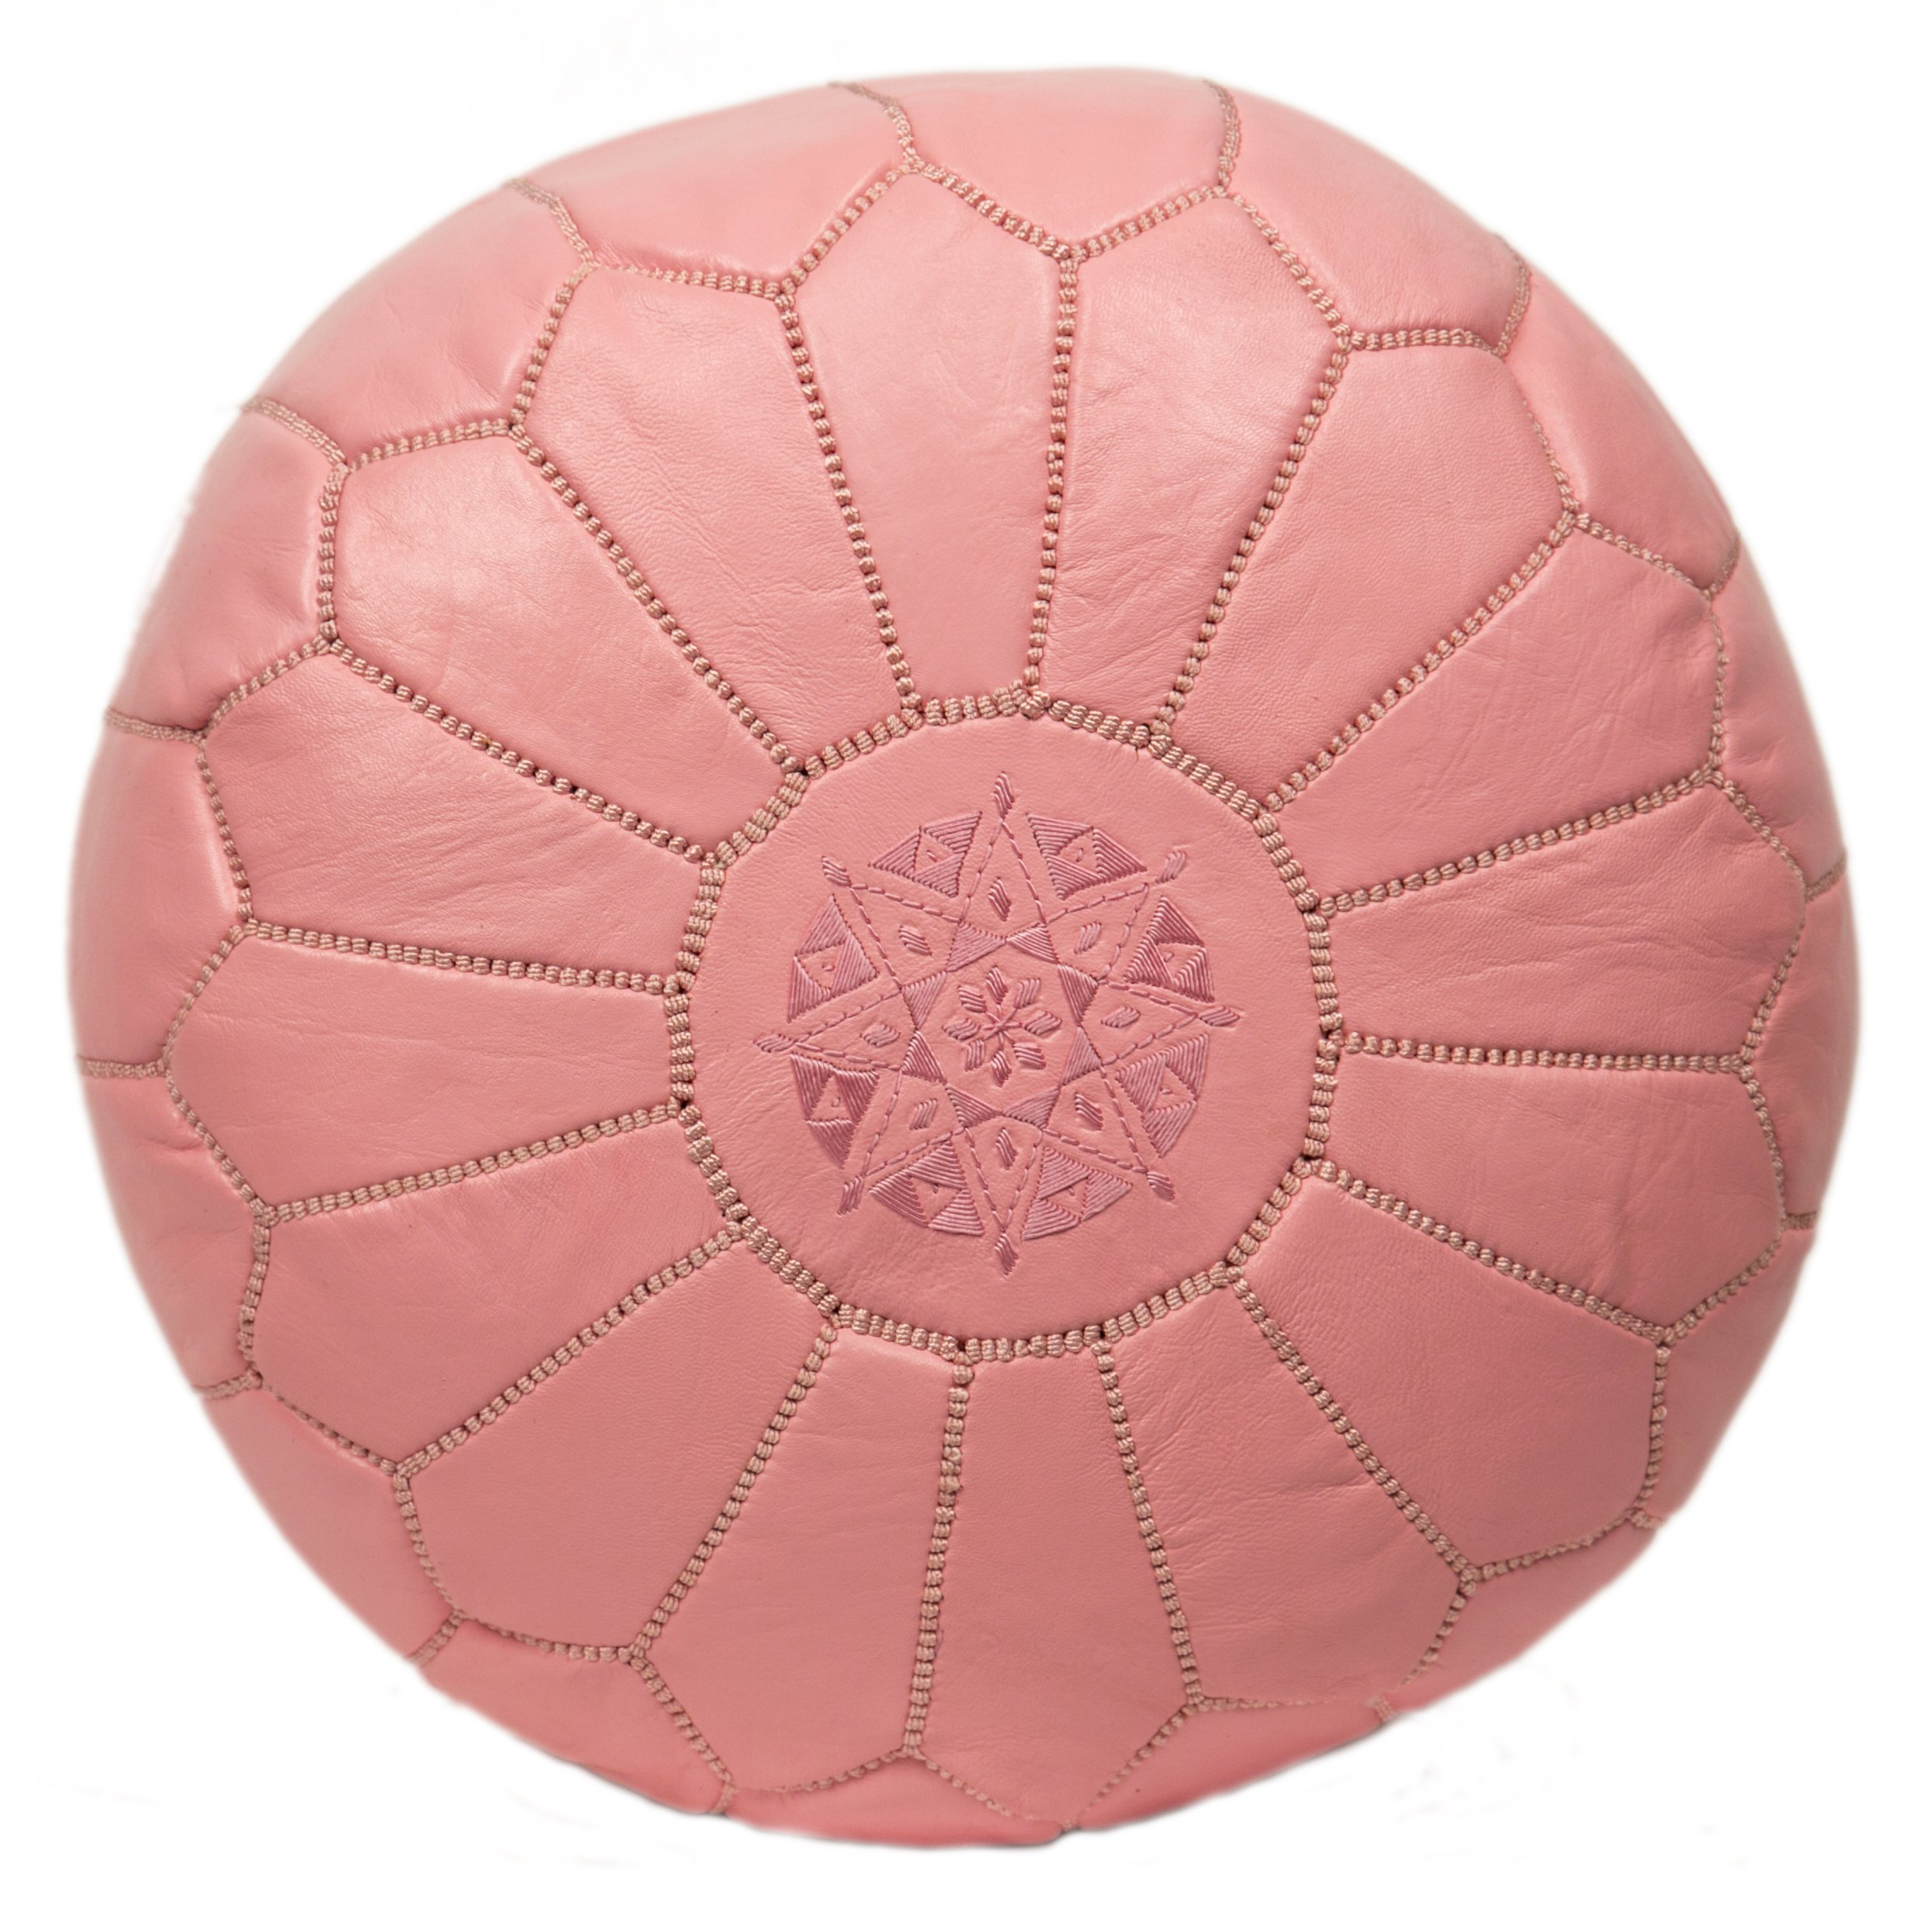 Casablanca Market Moroccan Embroidered Cotton Stuffed Leather Pouf/Ottoman, Pink